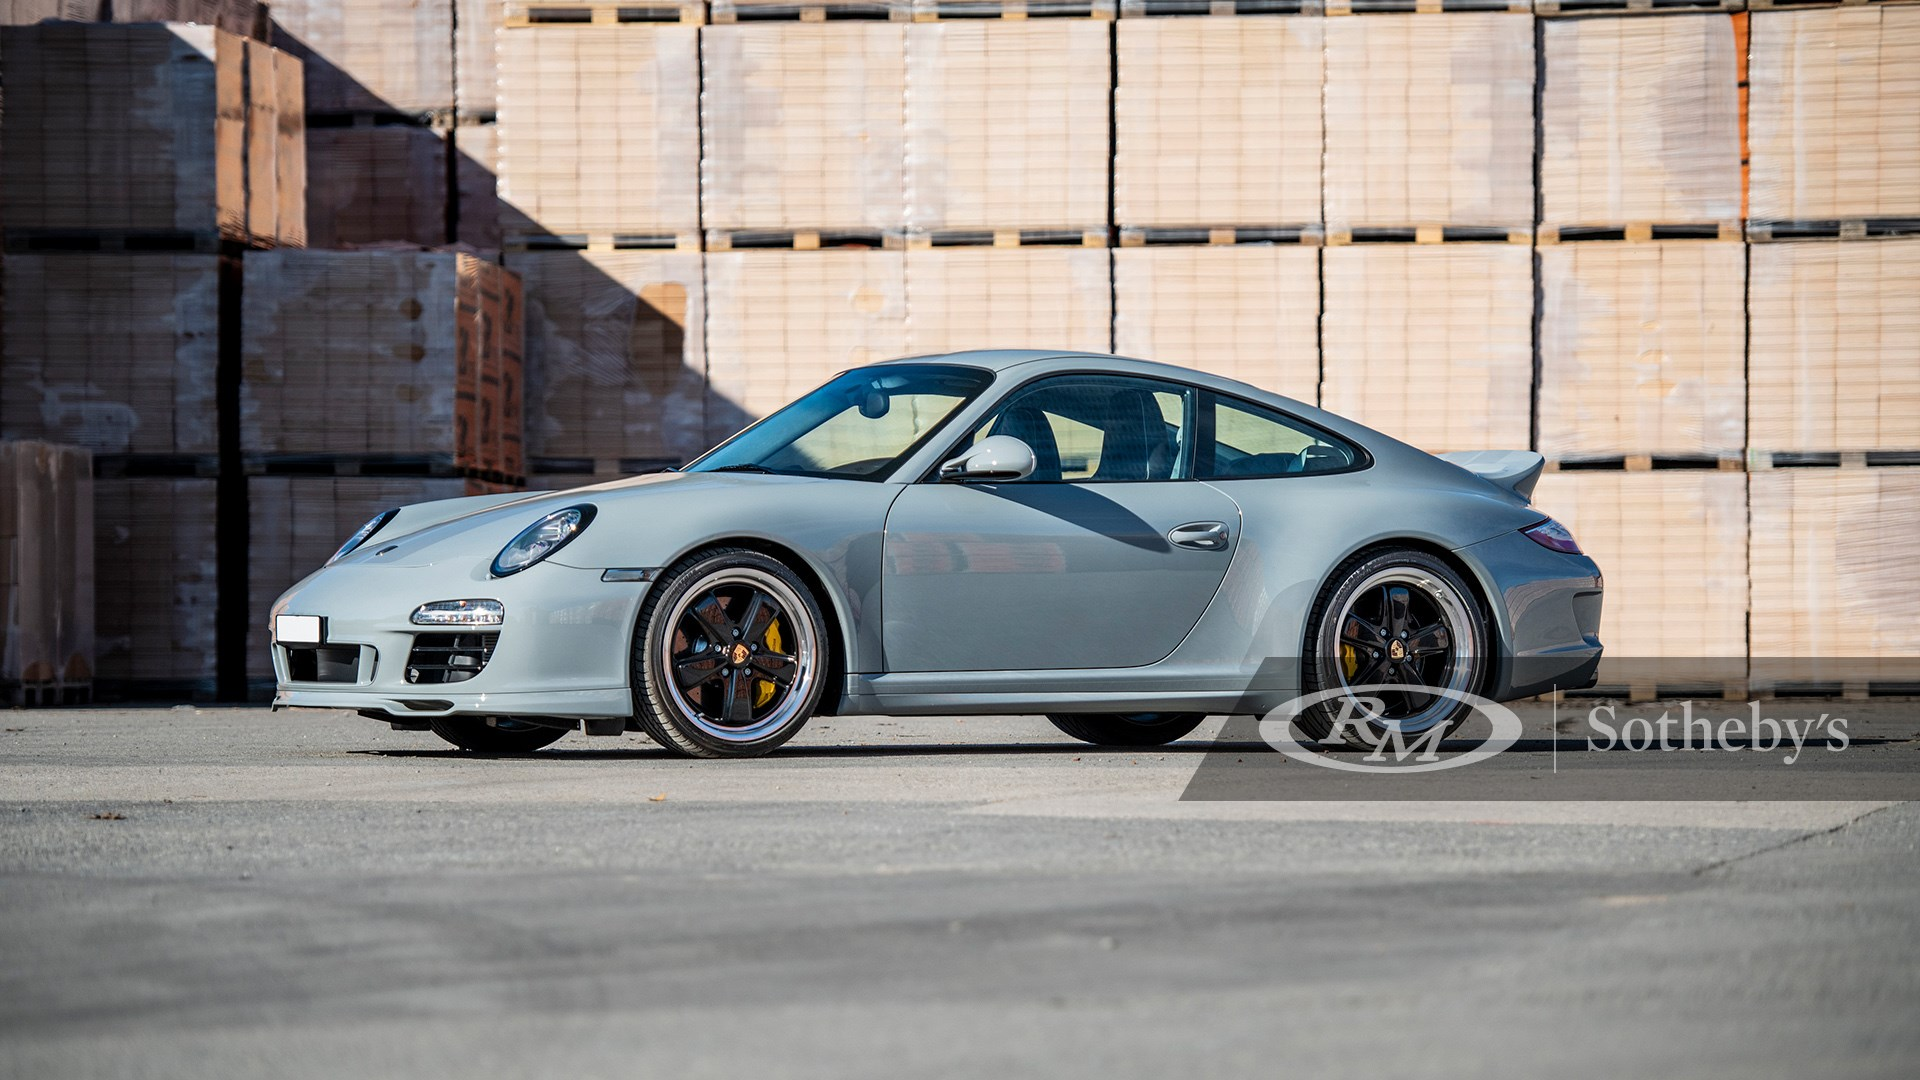 2010 Porsche 911 Sport Classic available at RM Sotheby's Online Only Open Roads February Auction 2021